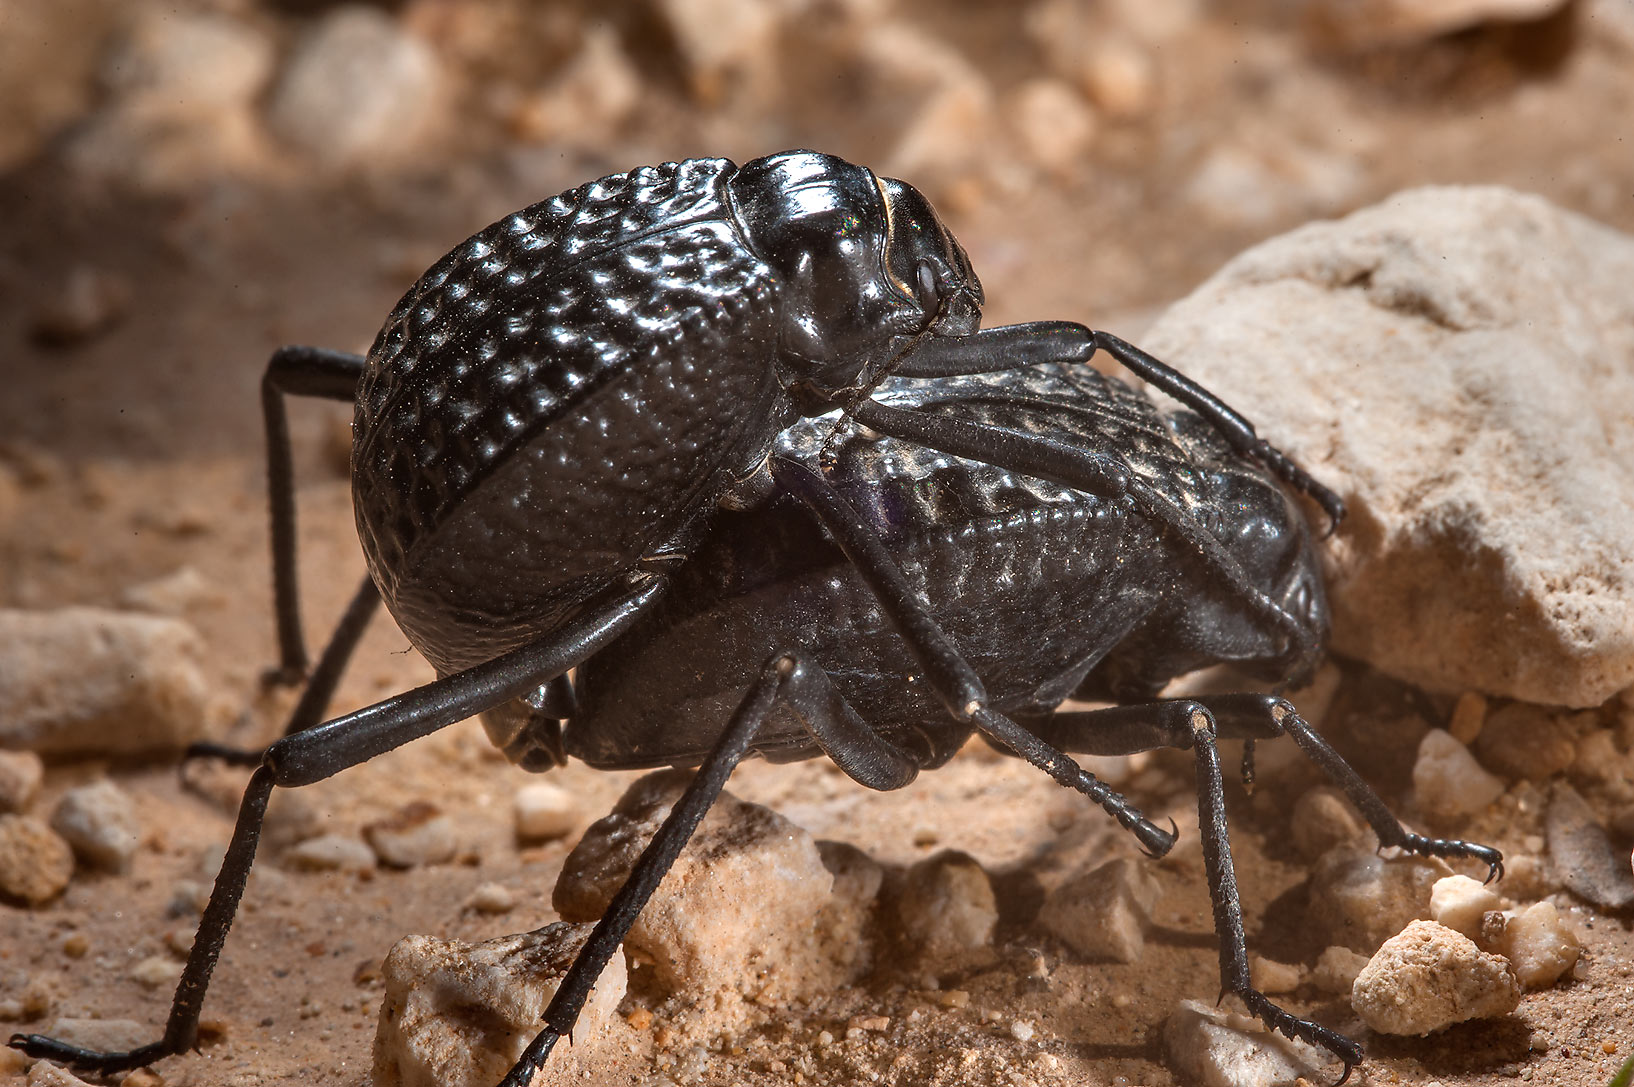 Mating pitted darkling beetles (Adesmia...of Al Magdah farms. Northern Qatar